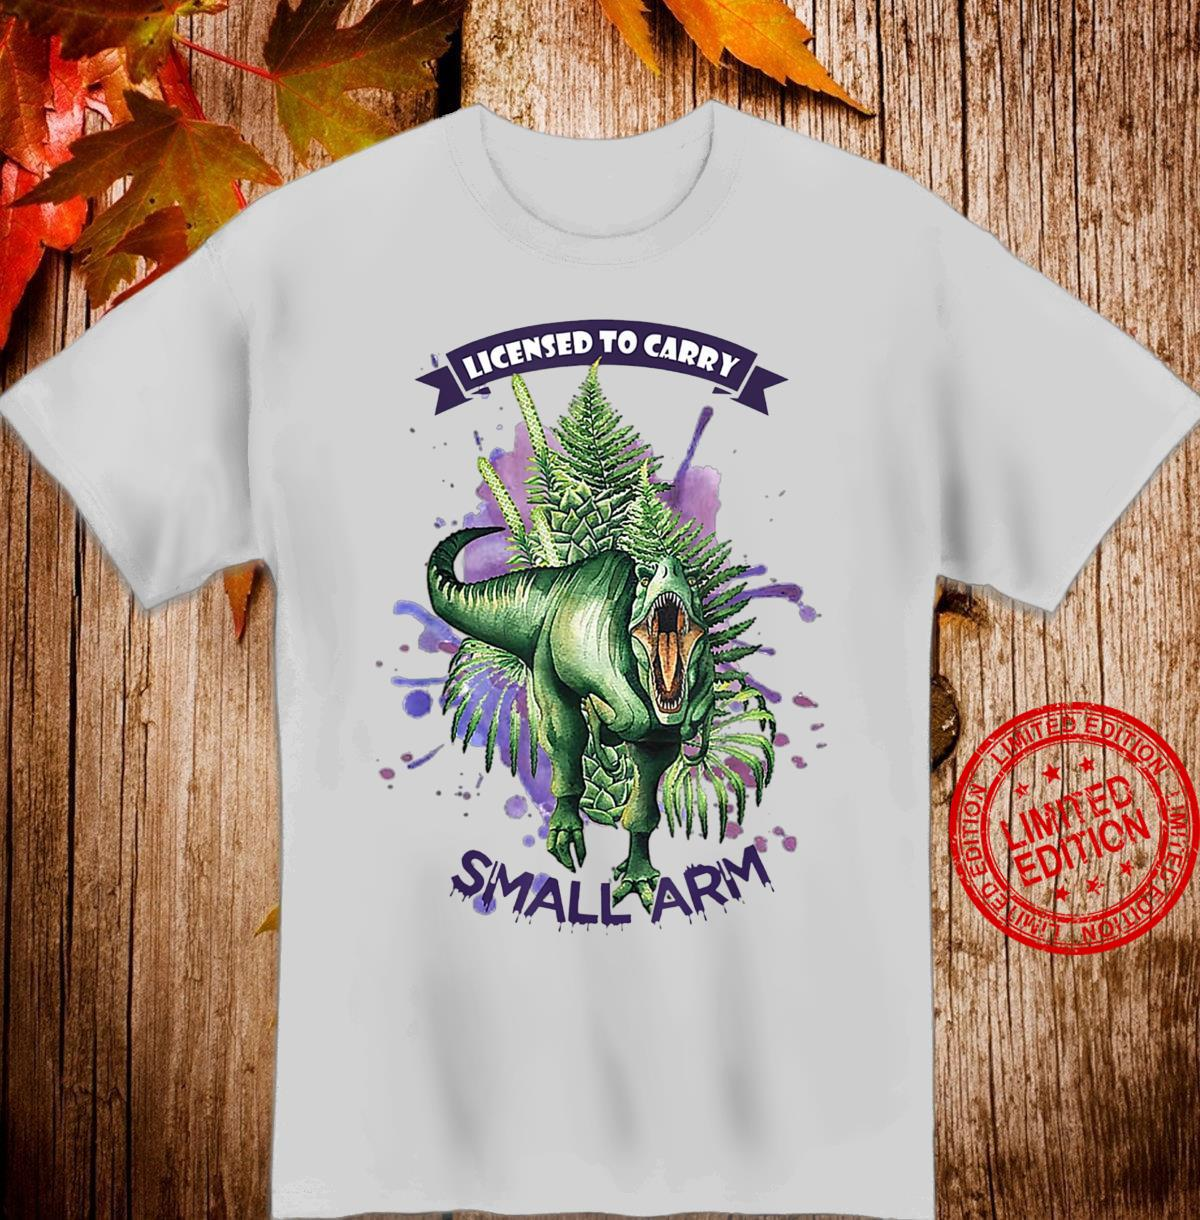 License to Carry Small Arms Dinosaurs Watercolor Tree Floral Shirt